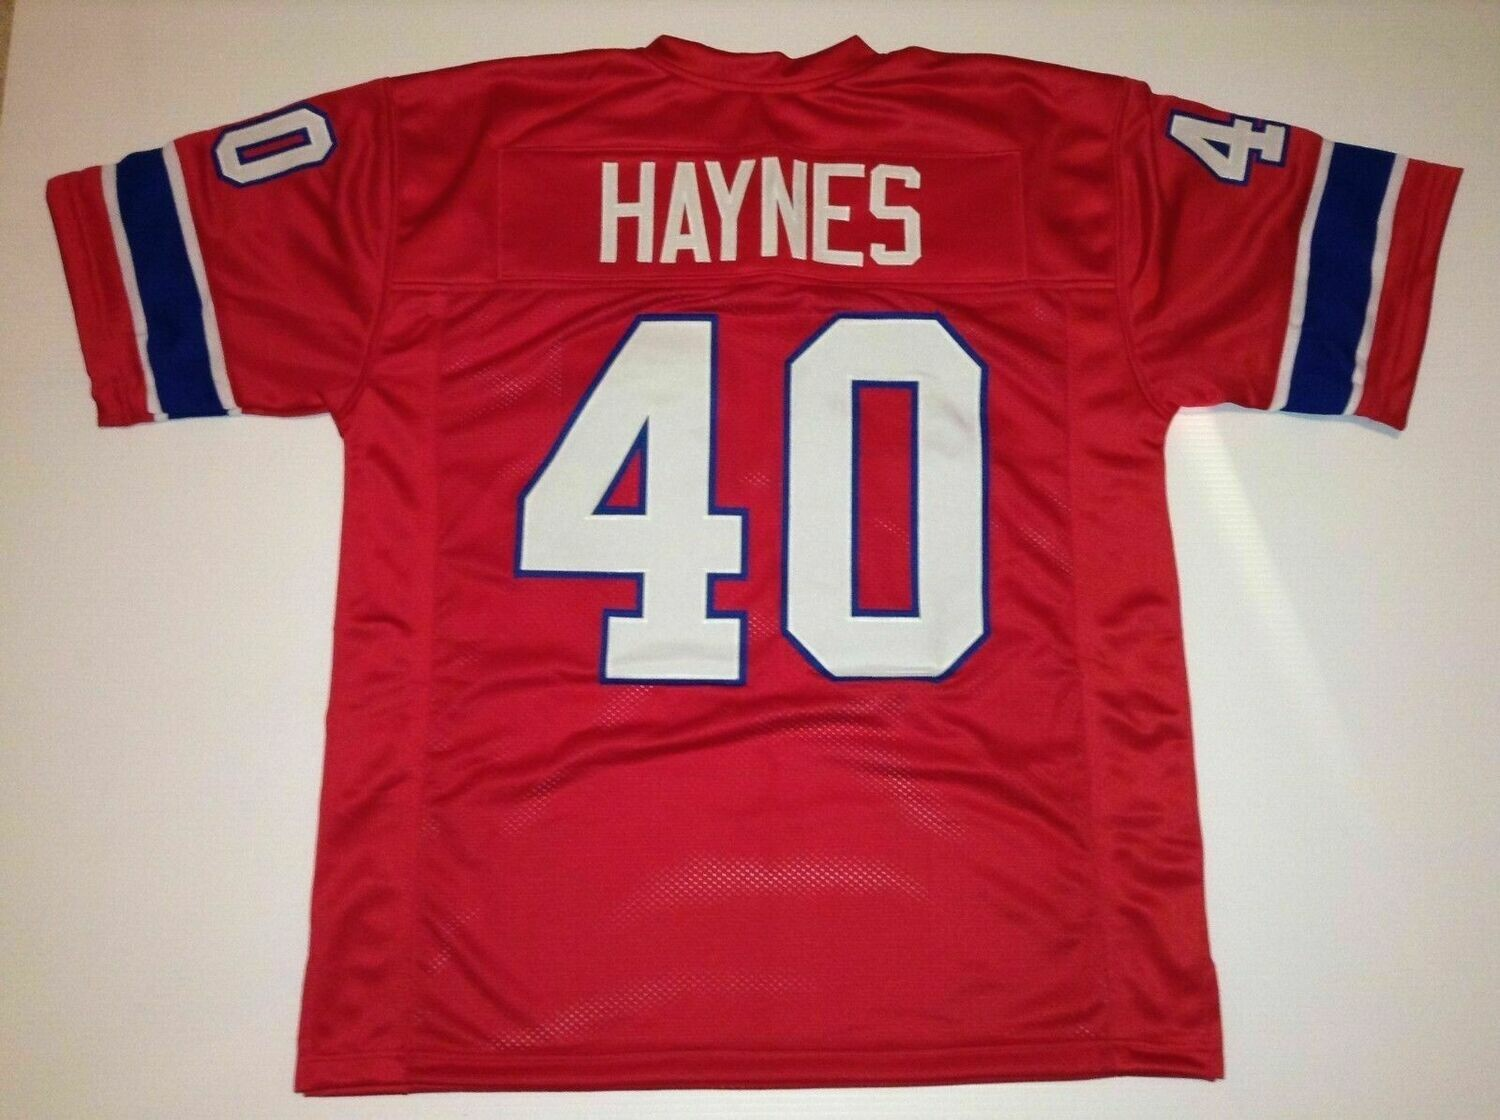 UNSIGNED CUSTOM Sewn Stitched Mike Haynes Red Jersey